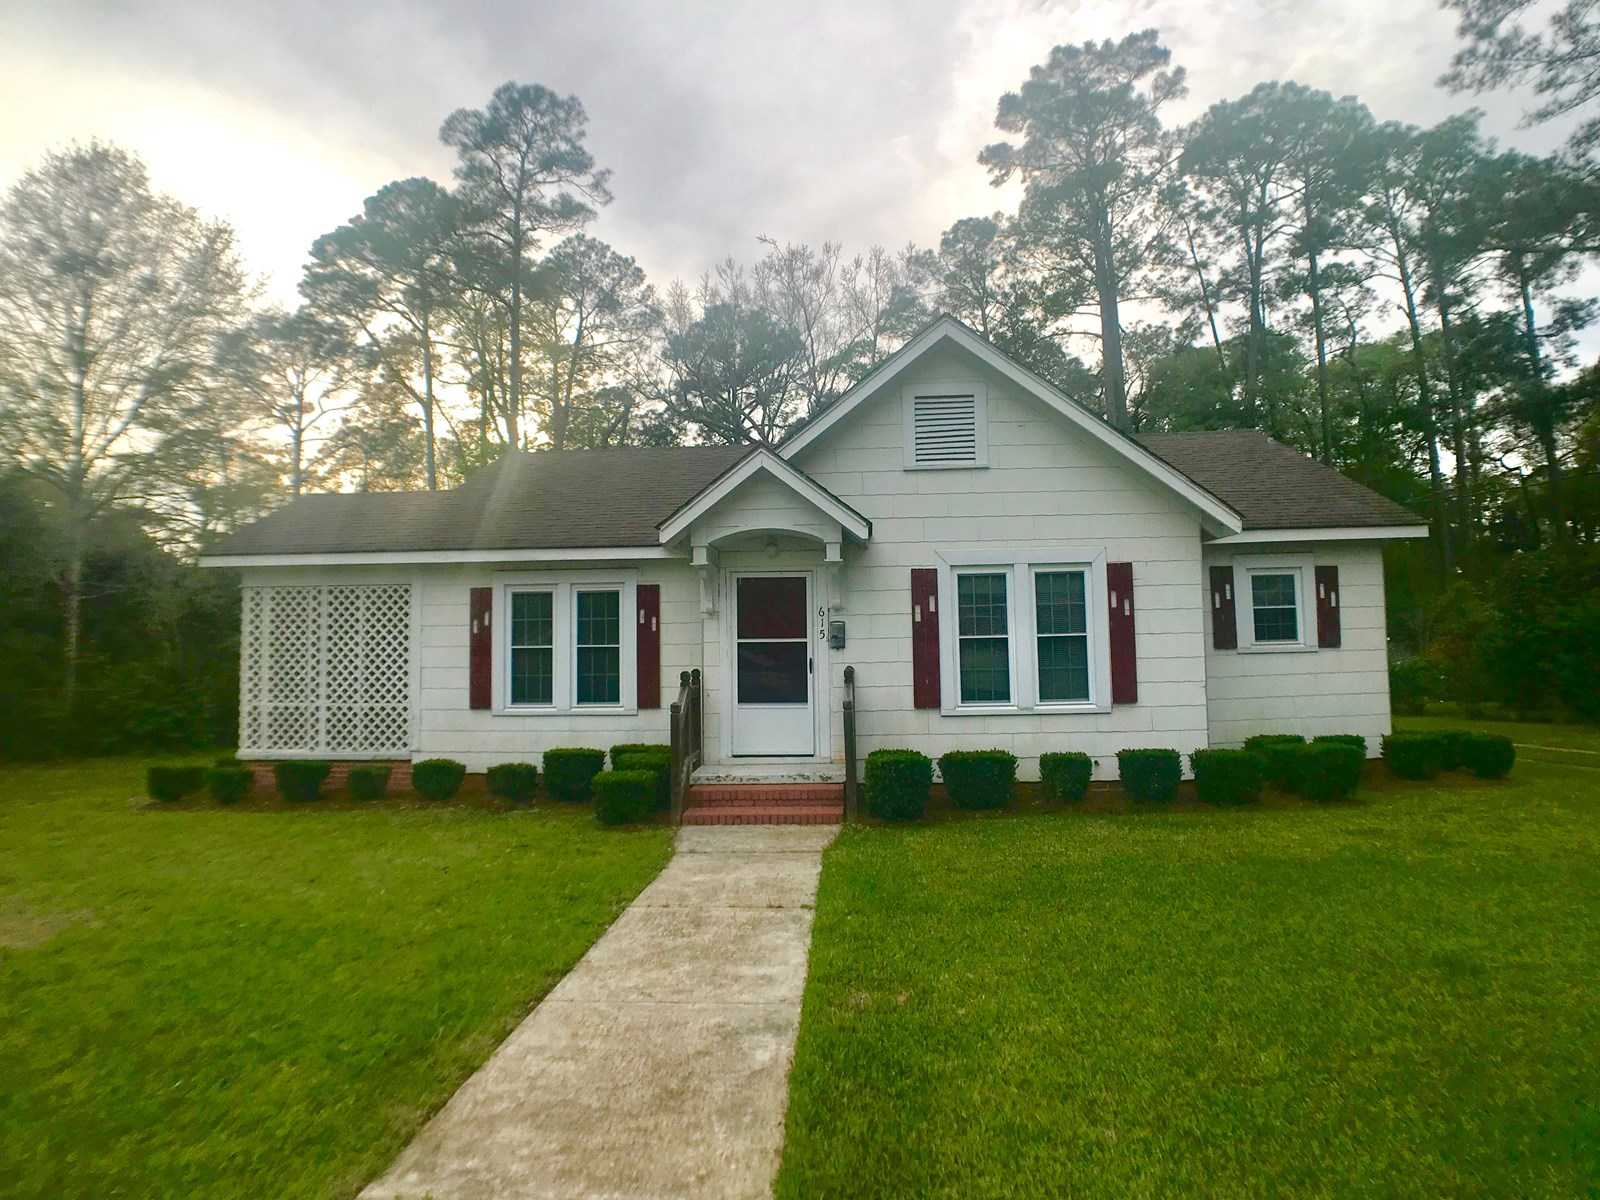 4 bedroom / 2 bathroom home in town Geneva, AL for sale